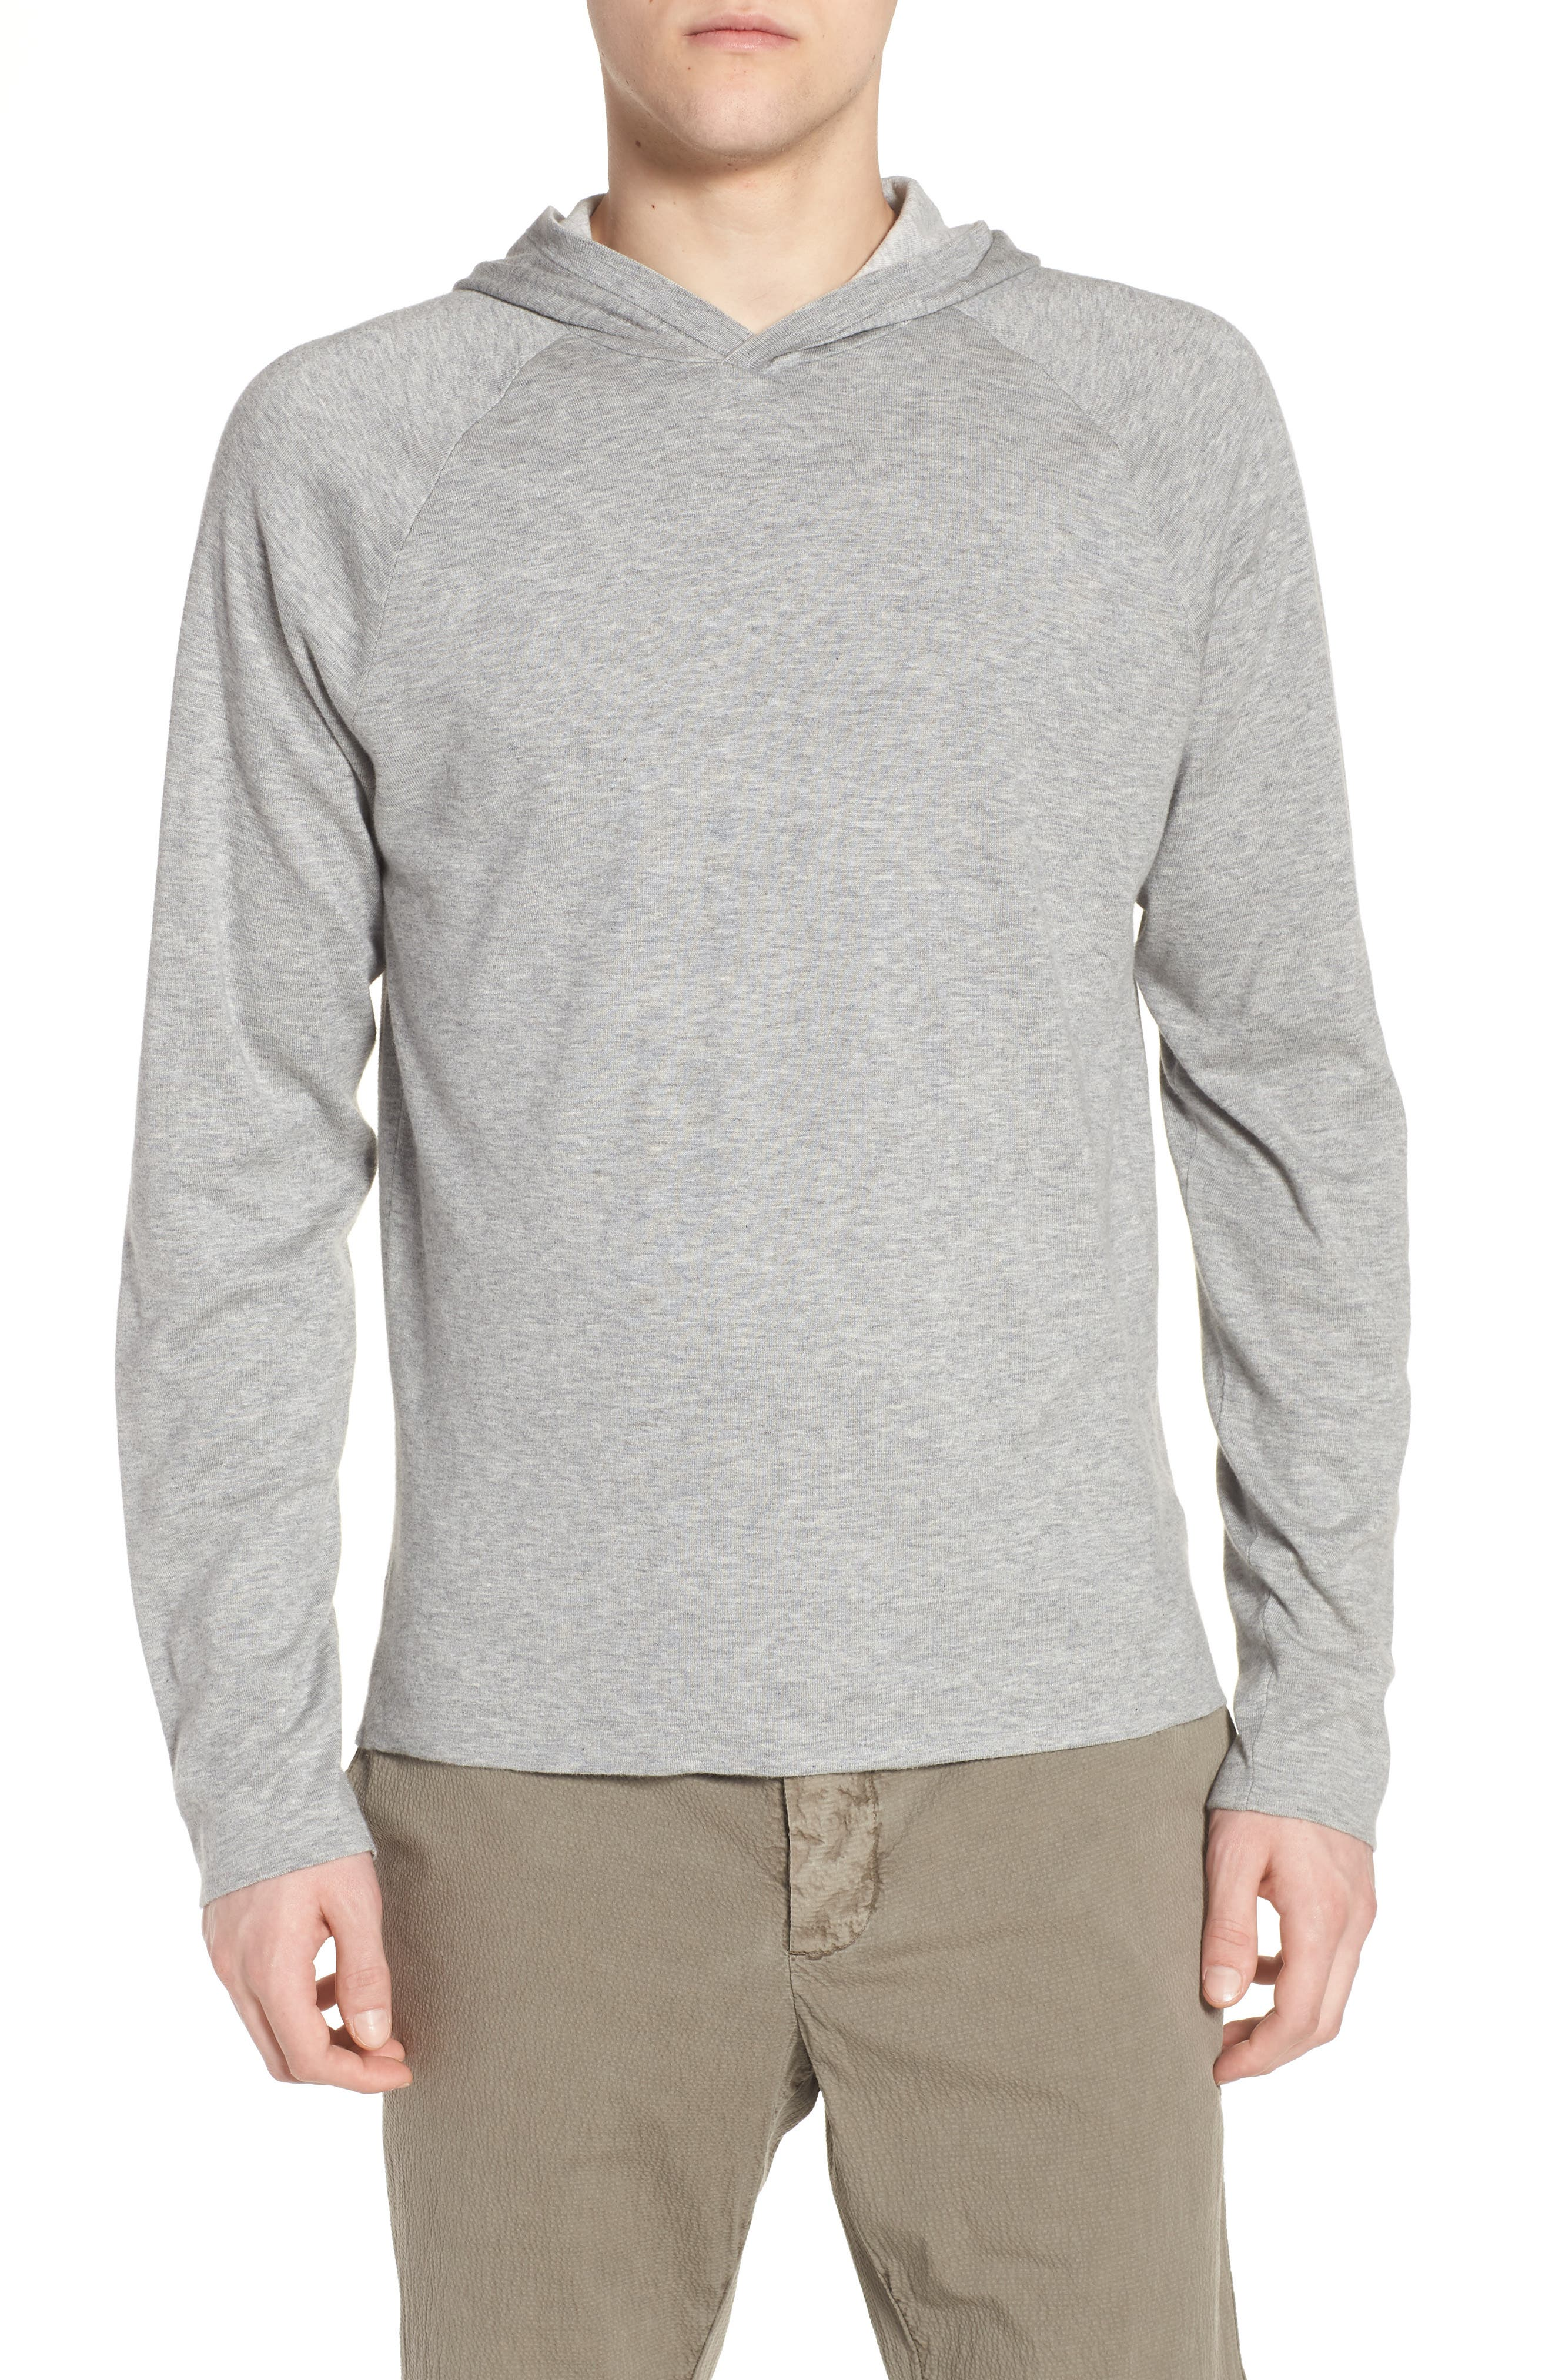 Reversible Hooded Sweater,                         Main,                         color, Heather Grey/ Platinum